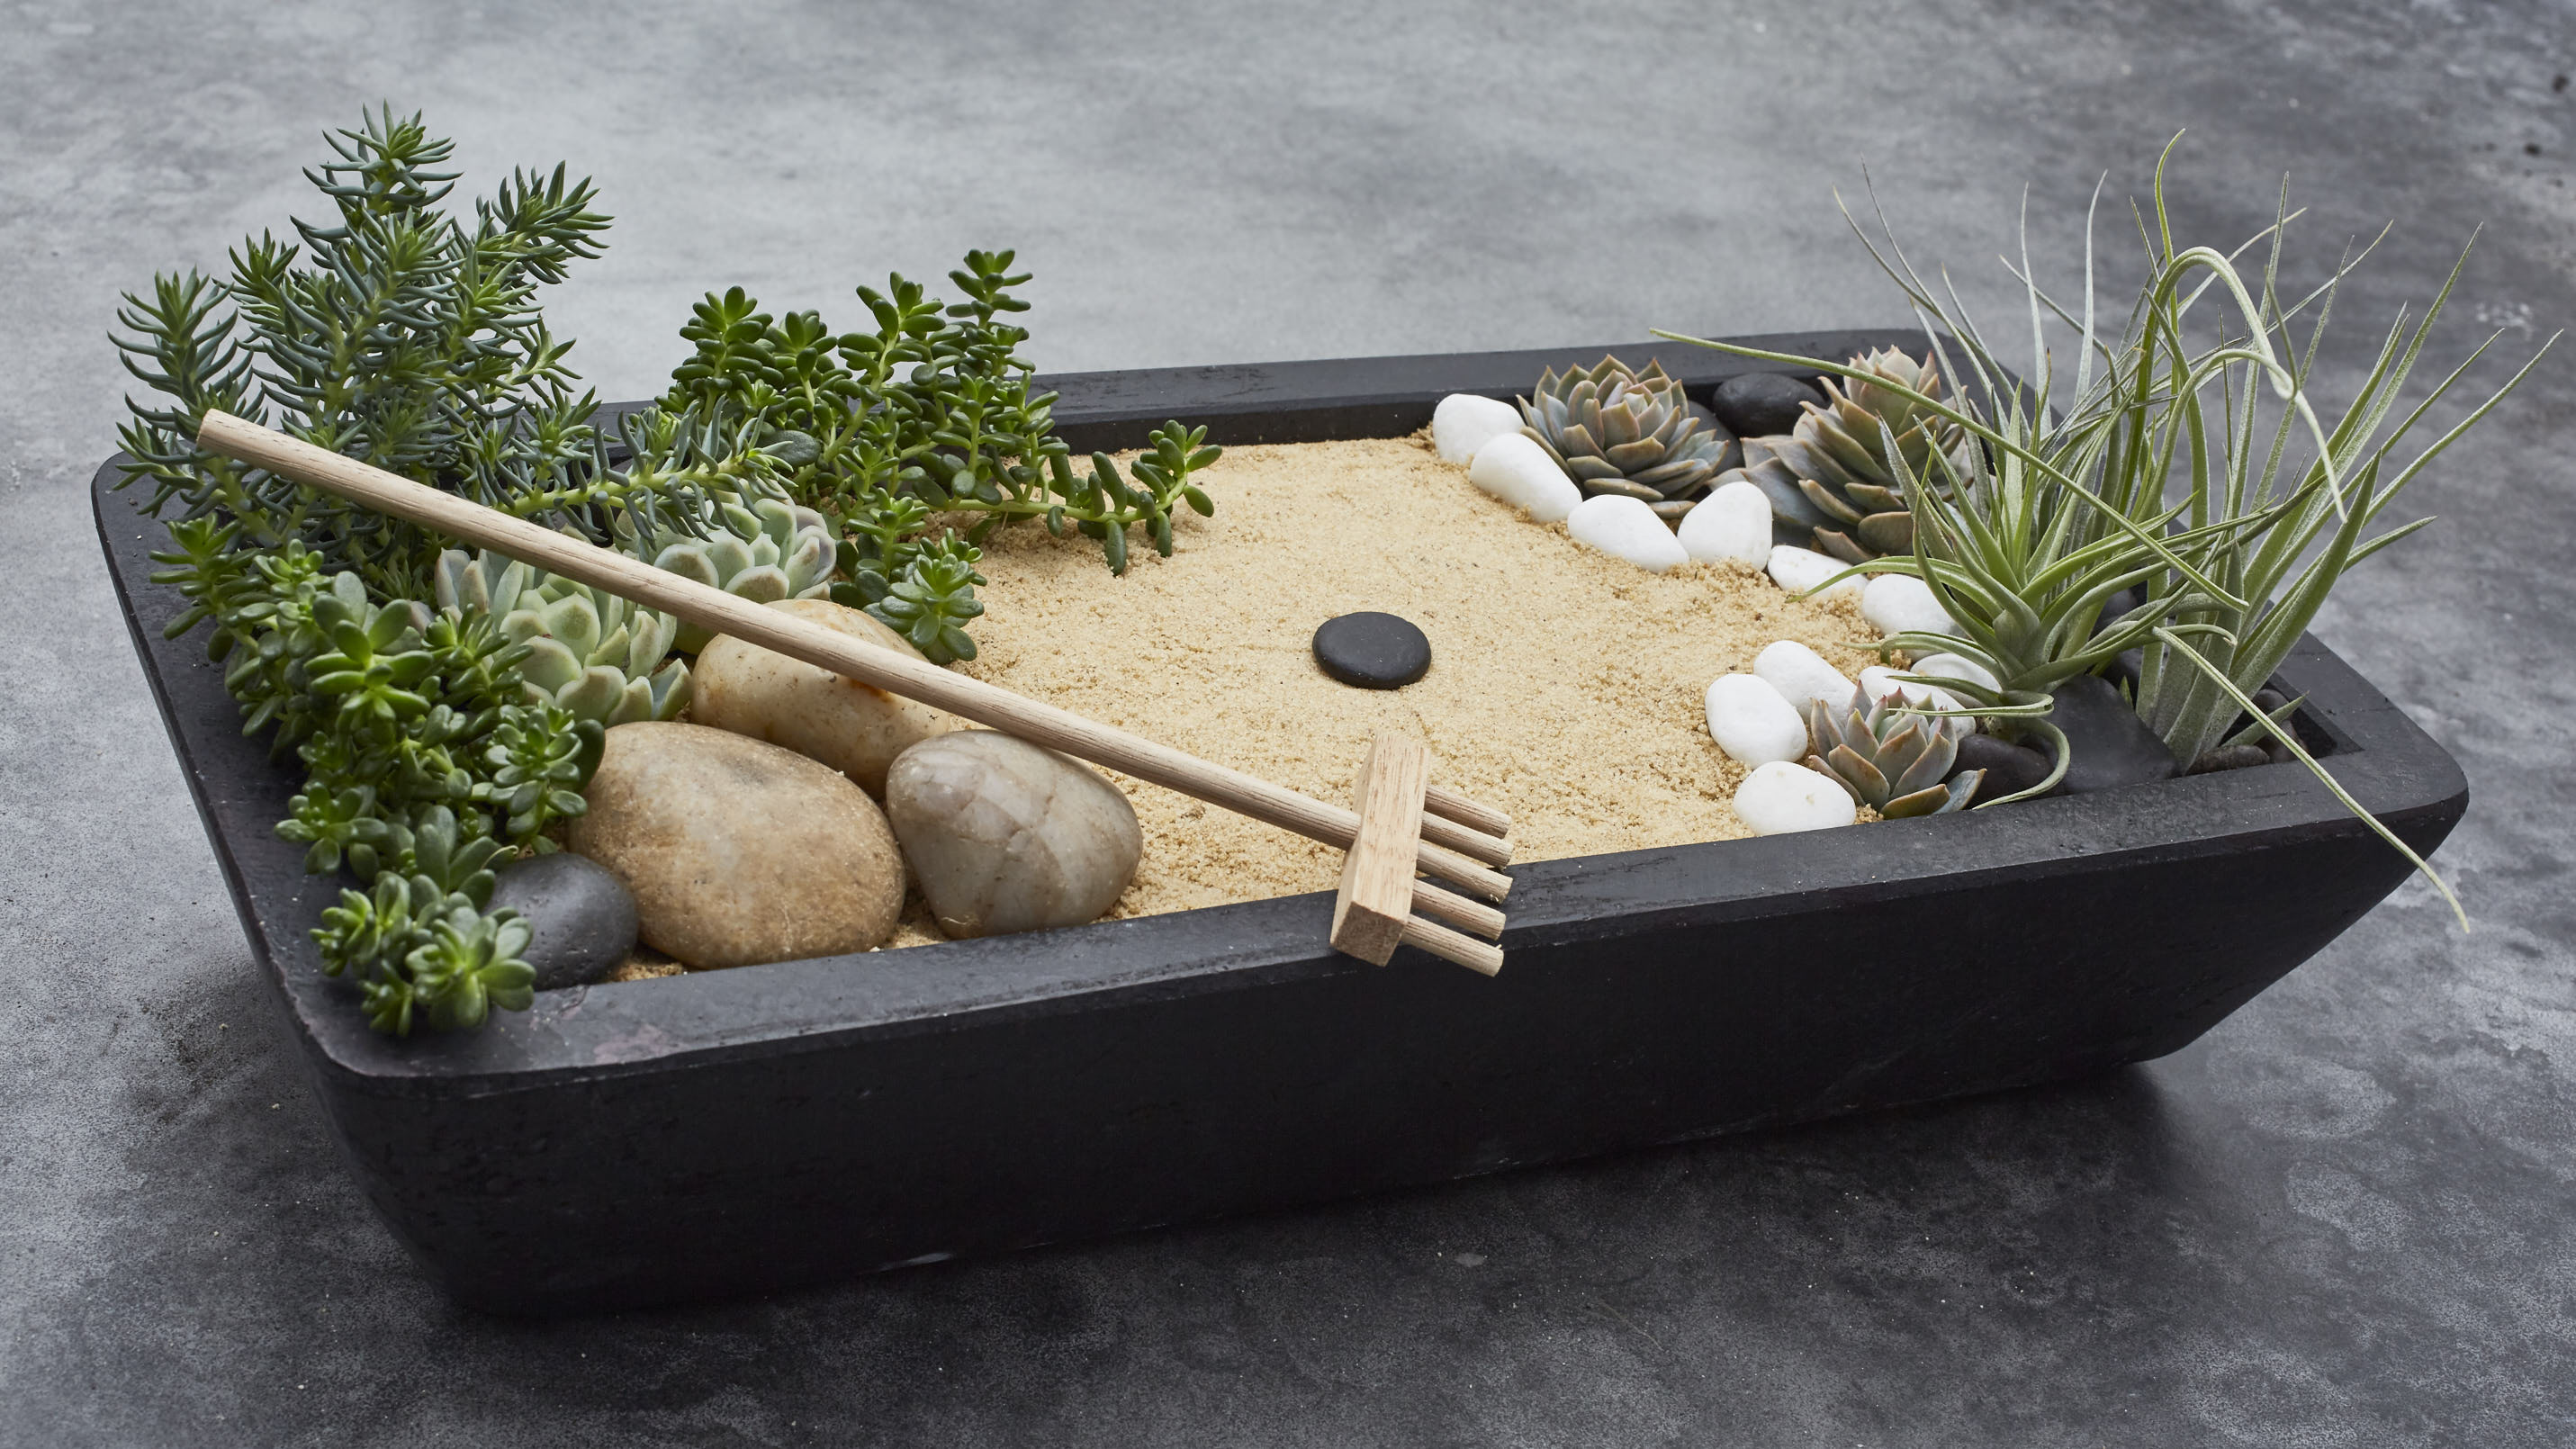 Master The Art Of Zen With This Relaxing Diy Project